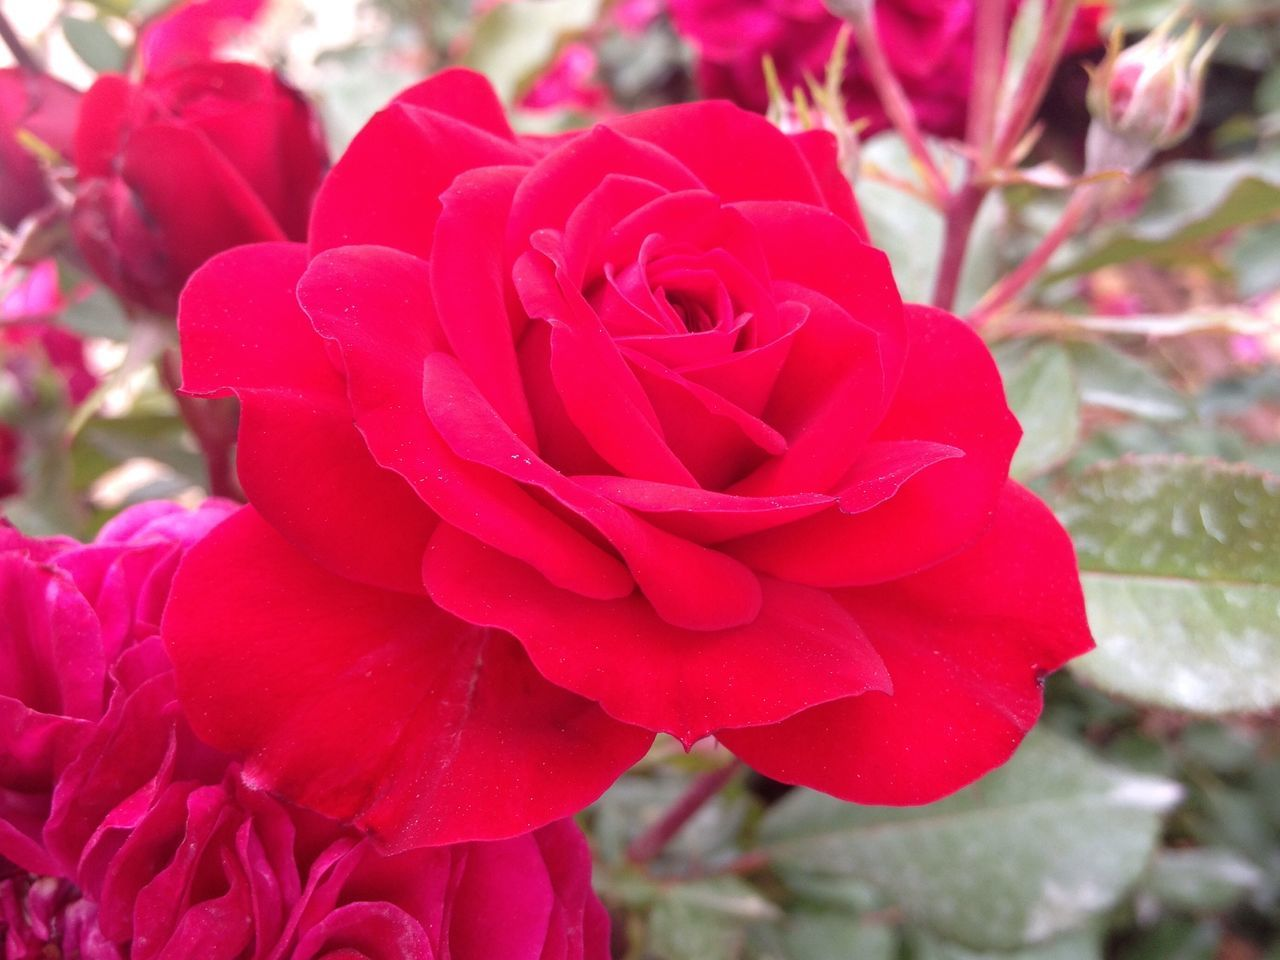 Rose🌹 Flower Petal Nature Beauty In Nature Red Close-up No People